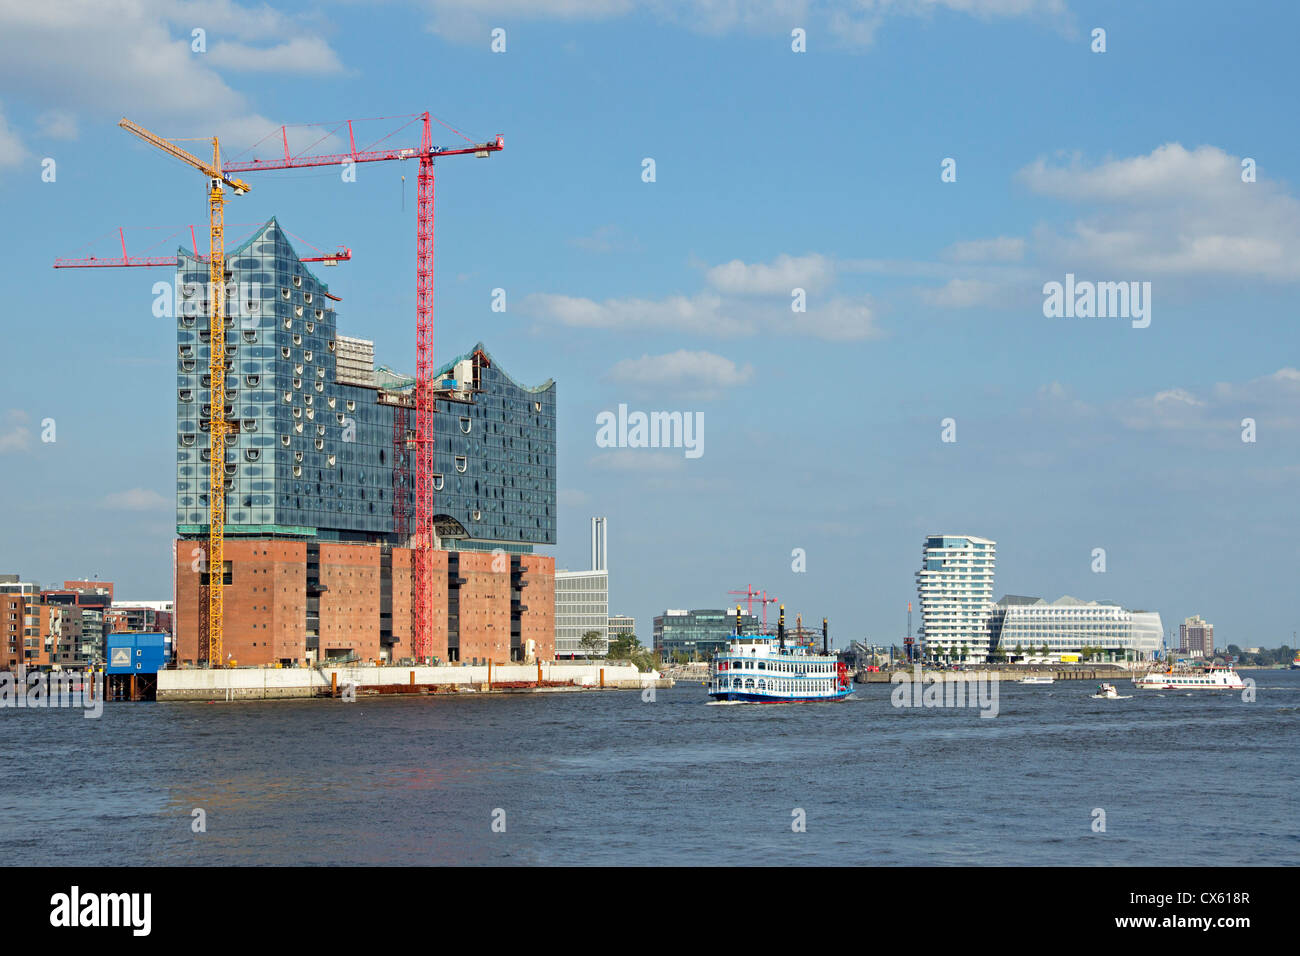 Elbe Philharmonic Hall under construction, Marco Polo Tower and Unilever House, harbour, Hamburg, Germany - Stock Image